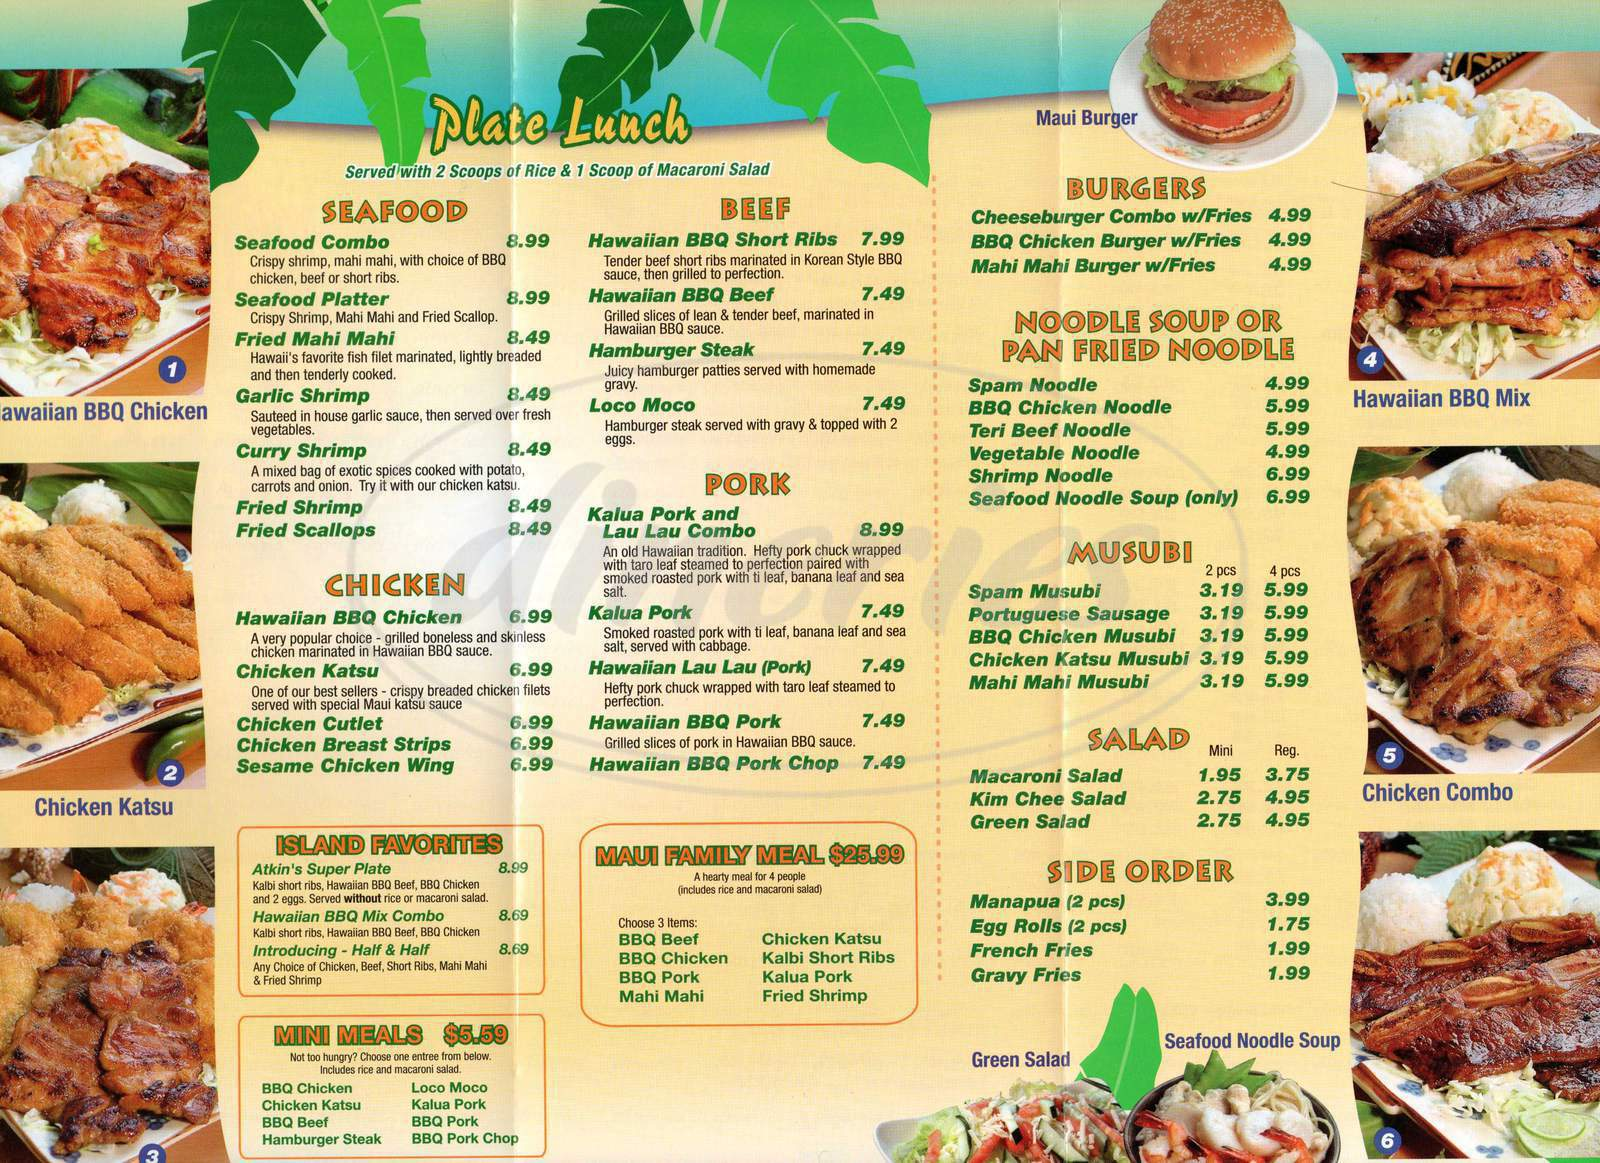 menu for Maui Hawaiian BBQ